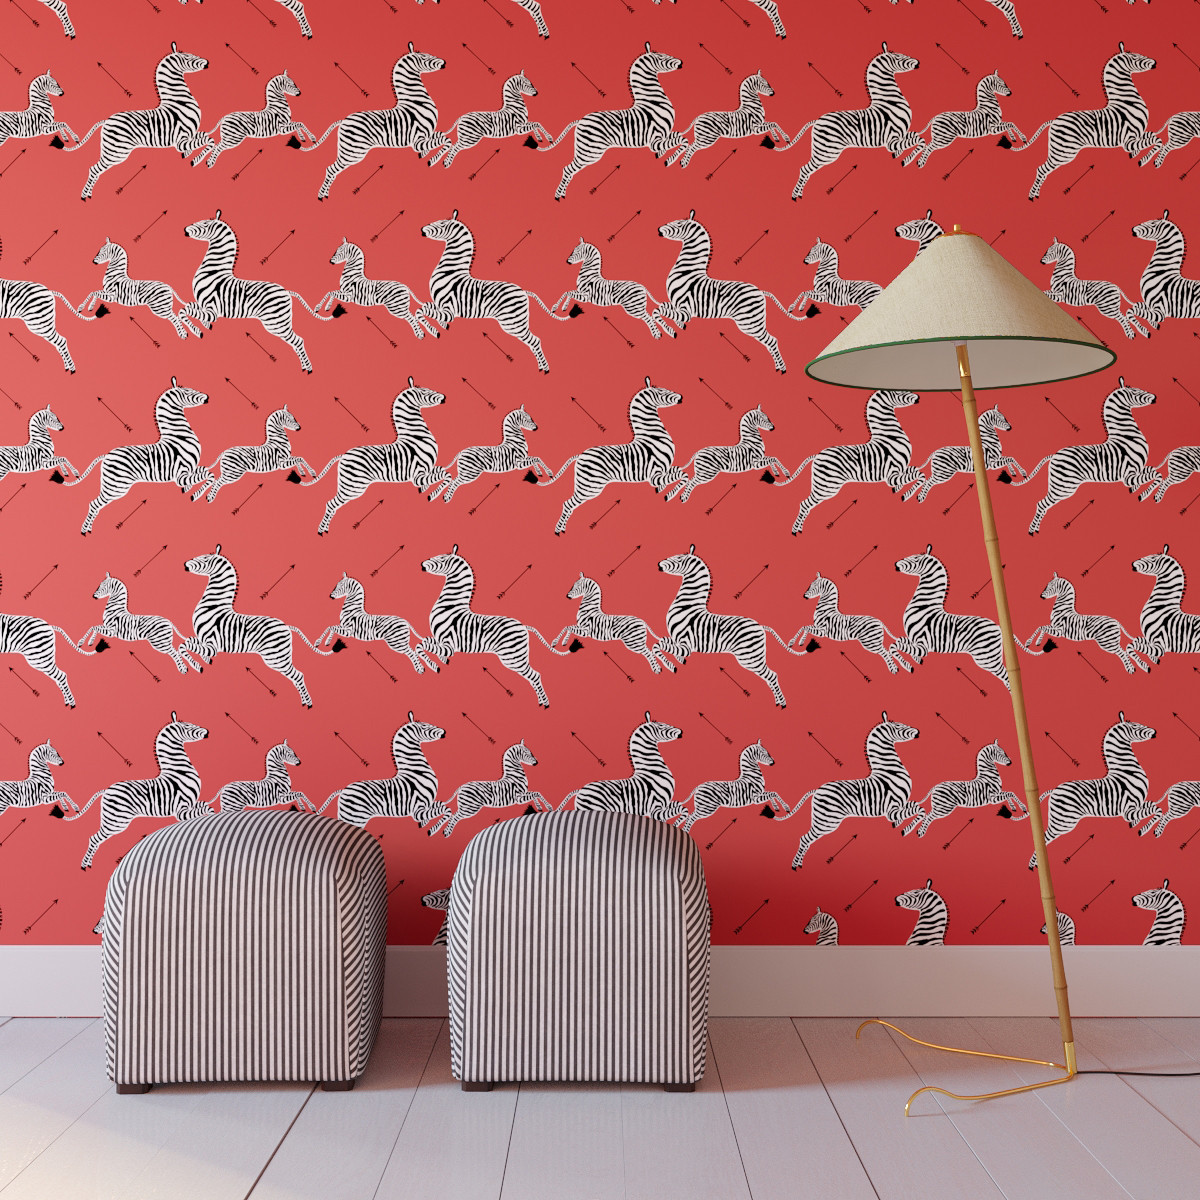 Peel and Stick Wallpaper Roll | Coral Zebra